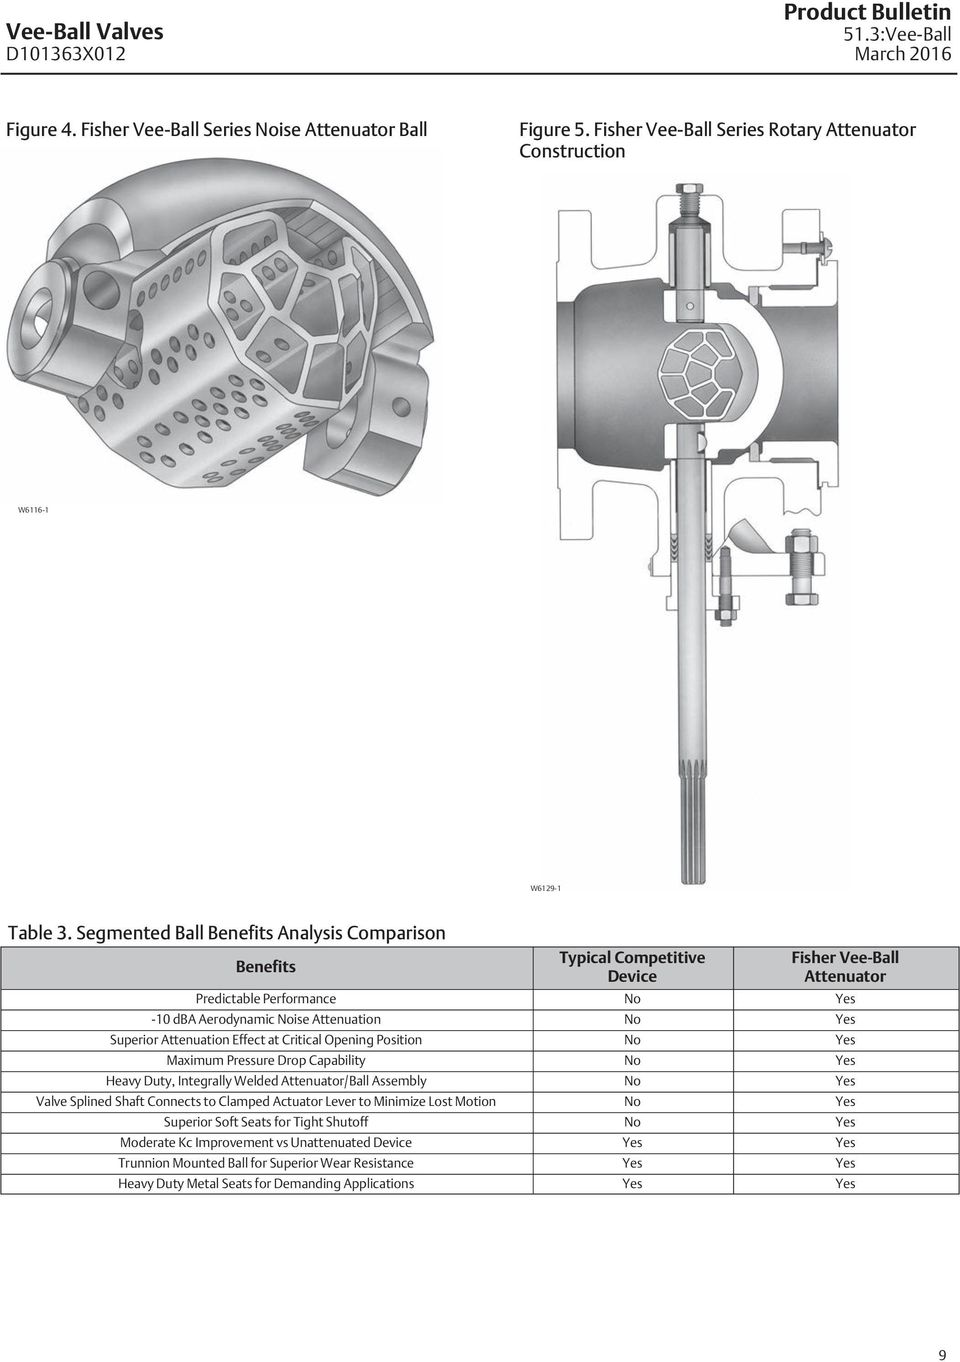 Attenuation Effect at Critical Opening Position No Yes Maximum Pressure Drop Capability No Yes Heavy Duty, Integrally Welded Attenuator/Ball Assembly No Yes Valve Splined Shaft Connects to Clamped